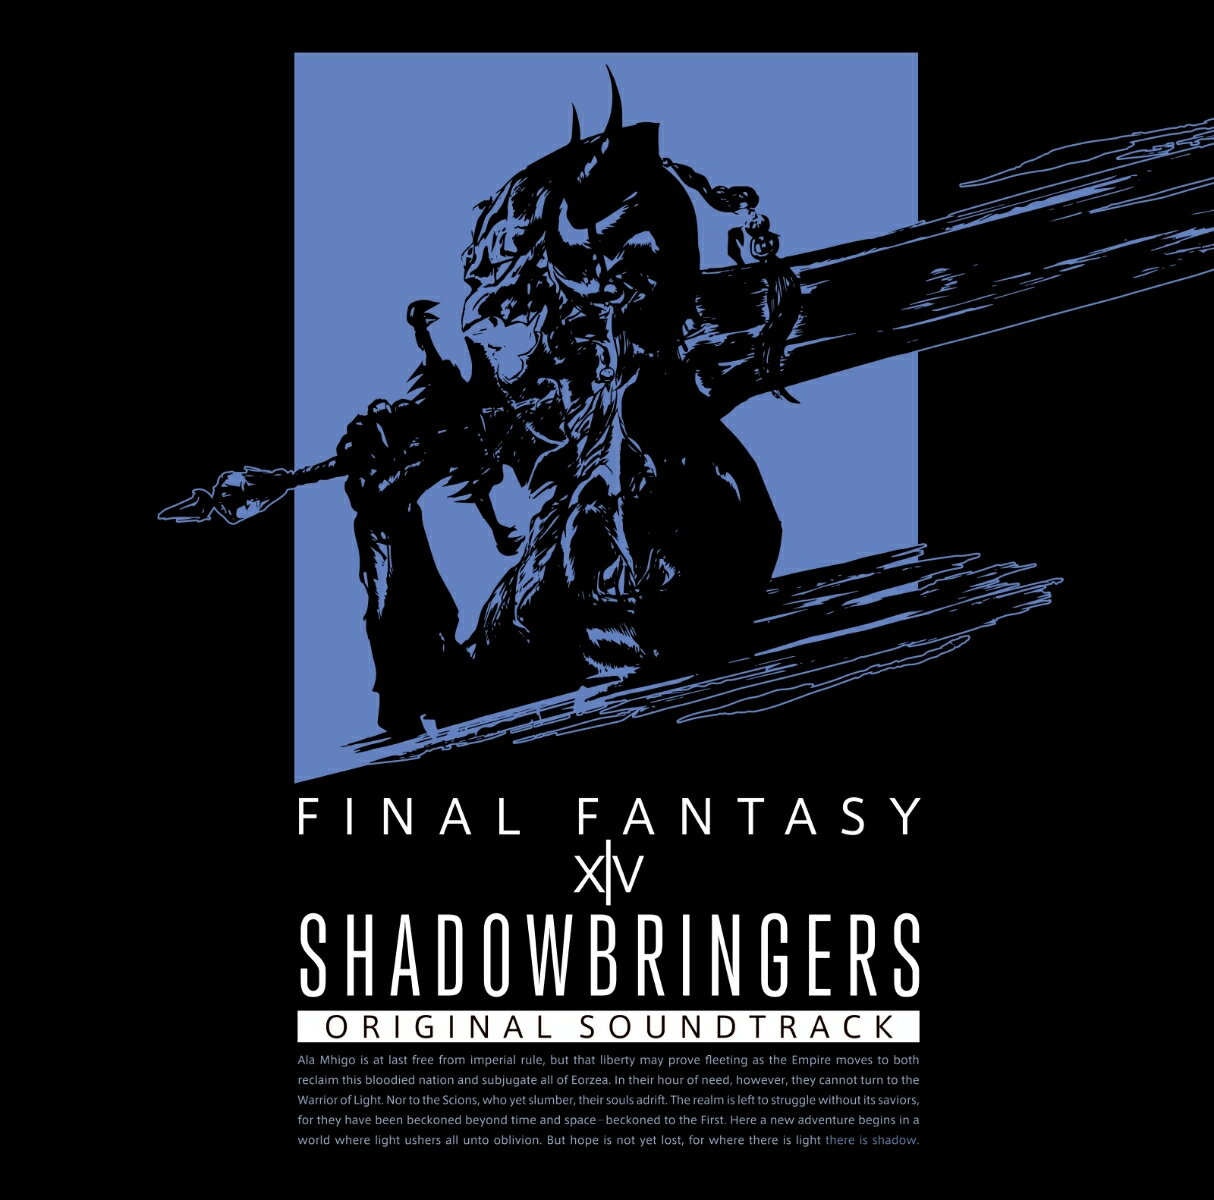 アニメ, キッズアニメ SHADOWBRINGERSFINAL FANTASY XIV Original Soundtrack(Blu-ray Disc Music)